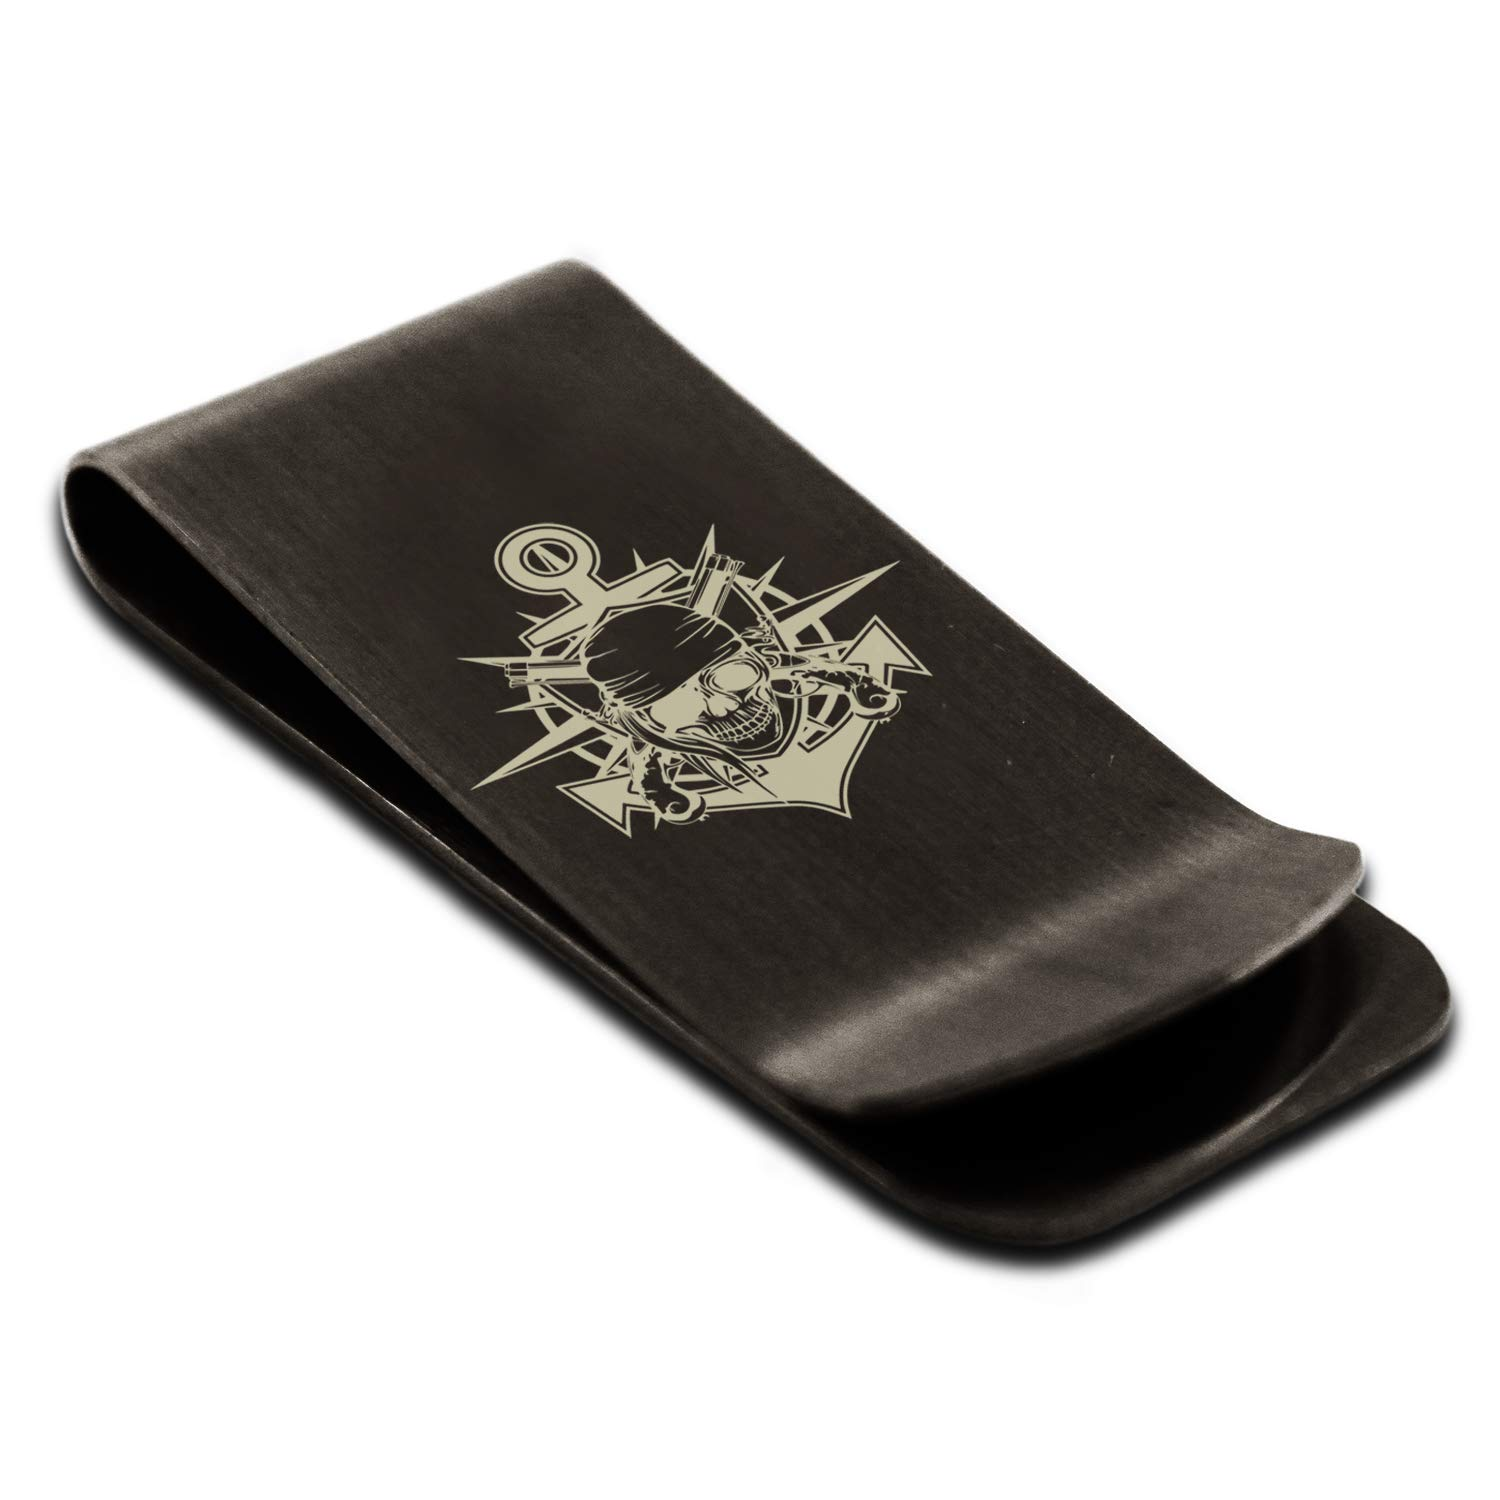 Stainless Steel Pirate Bandit Skull Anchor Engraved Money Clip Credit Card Holder